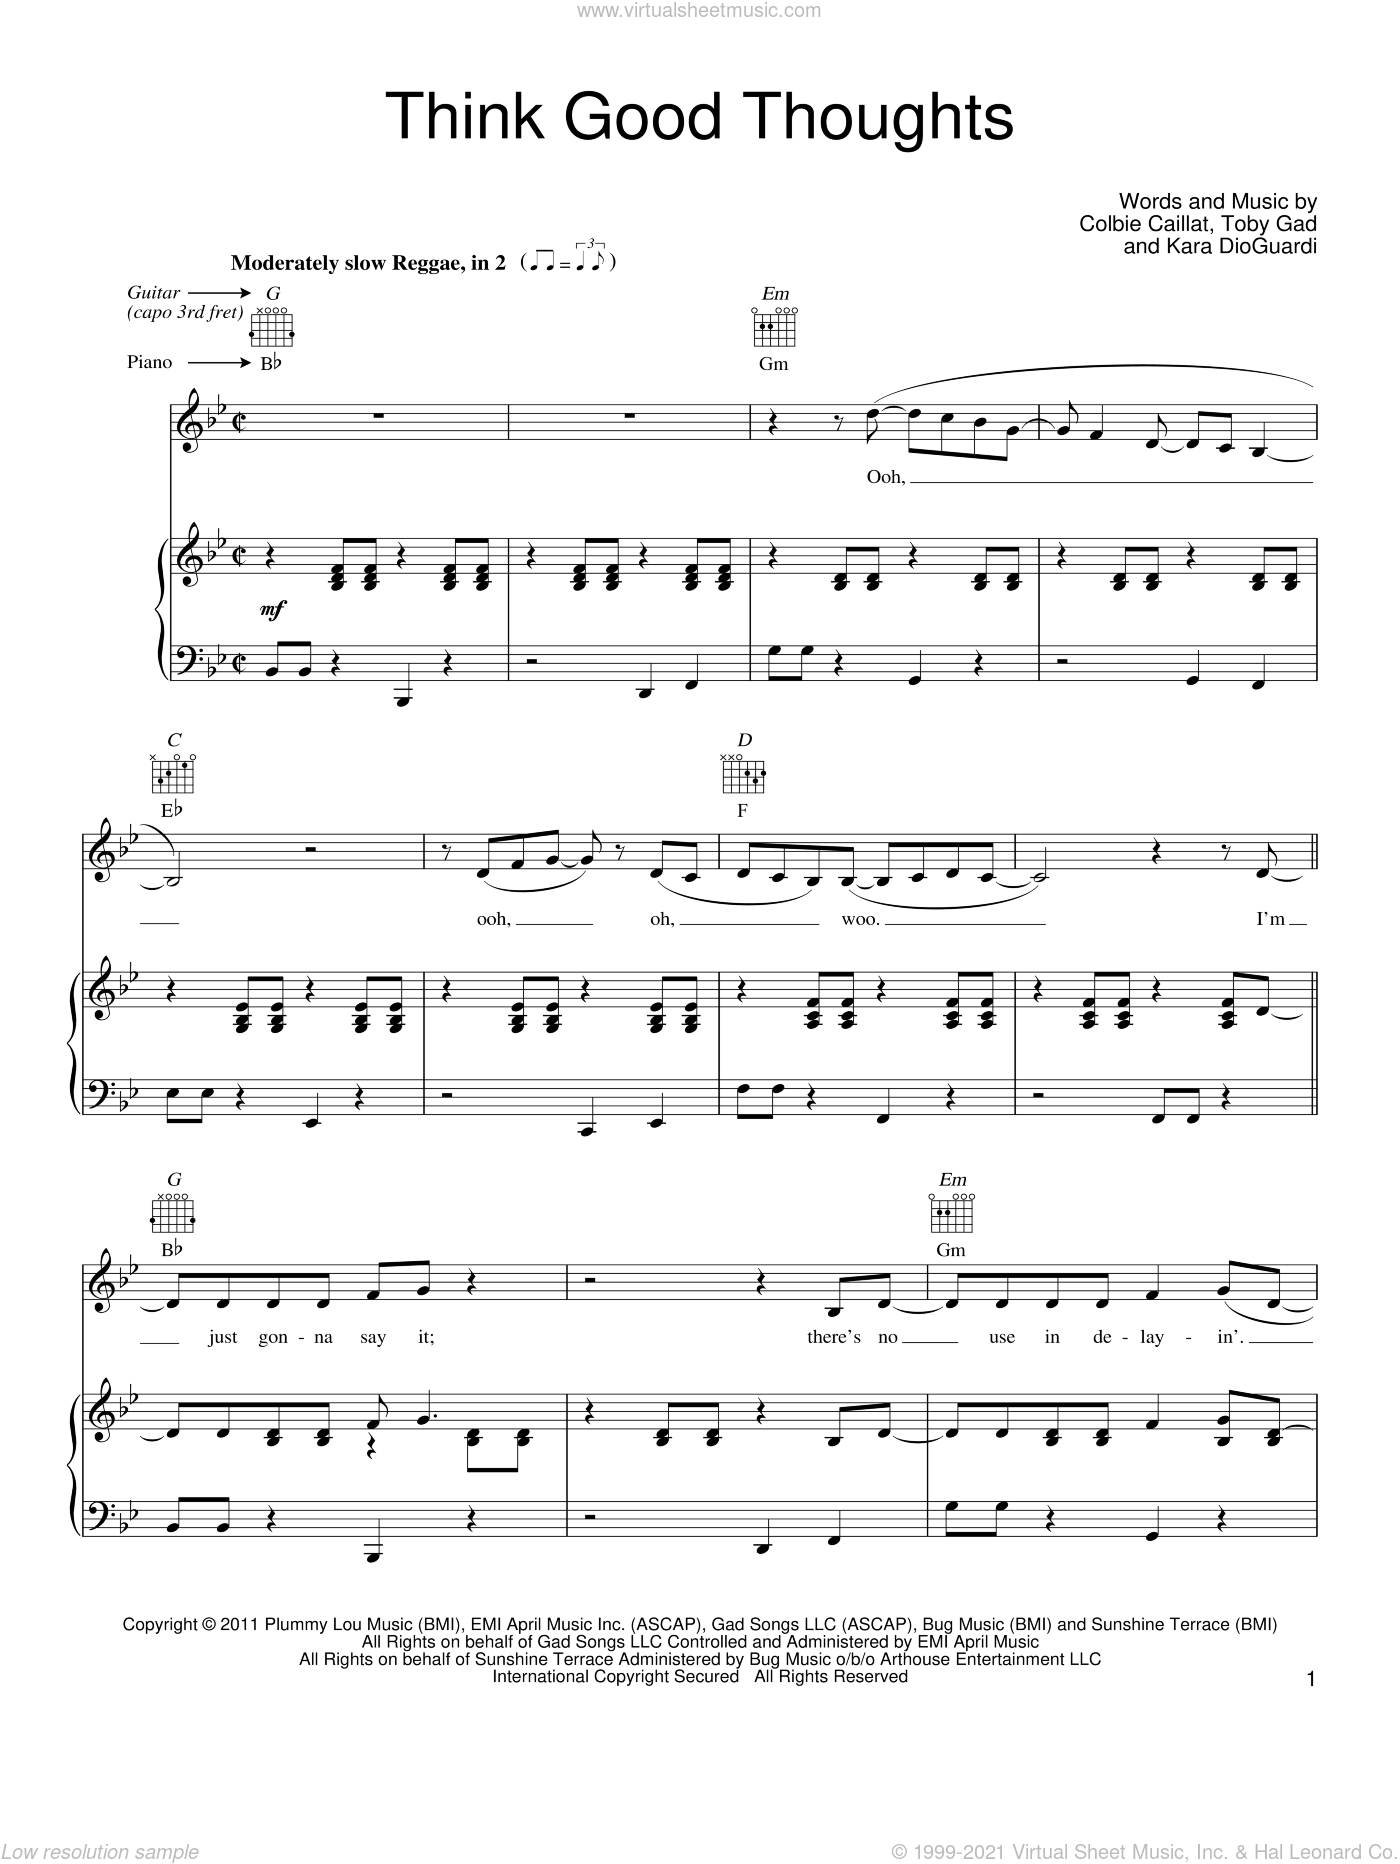 Think Good Thoughts sheet music for voice, piano or guitar by Colbie Caillat, Kara DioGuardi and Toby Gad, intermediate skill level